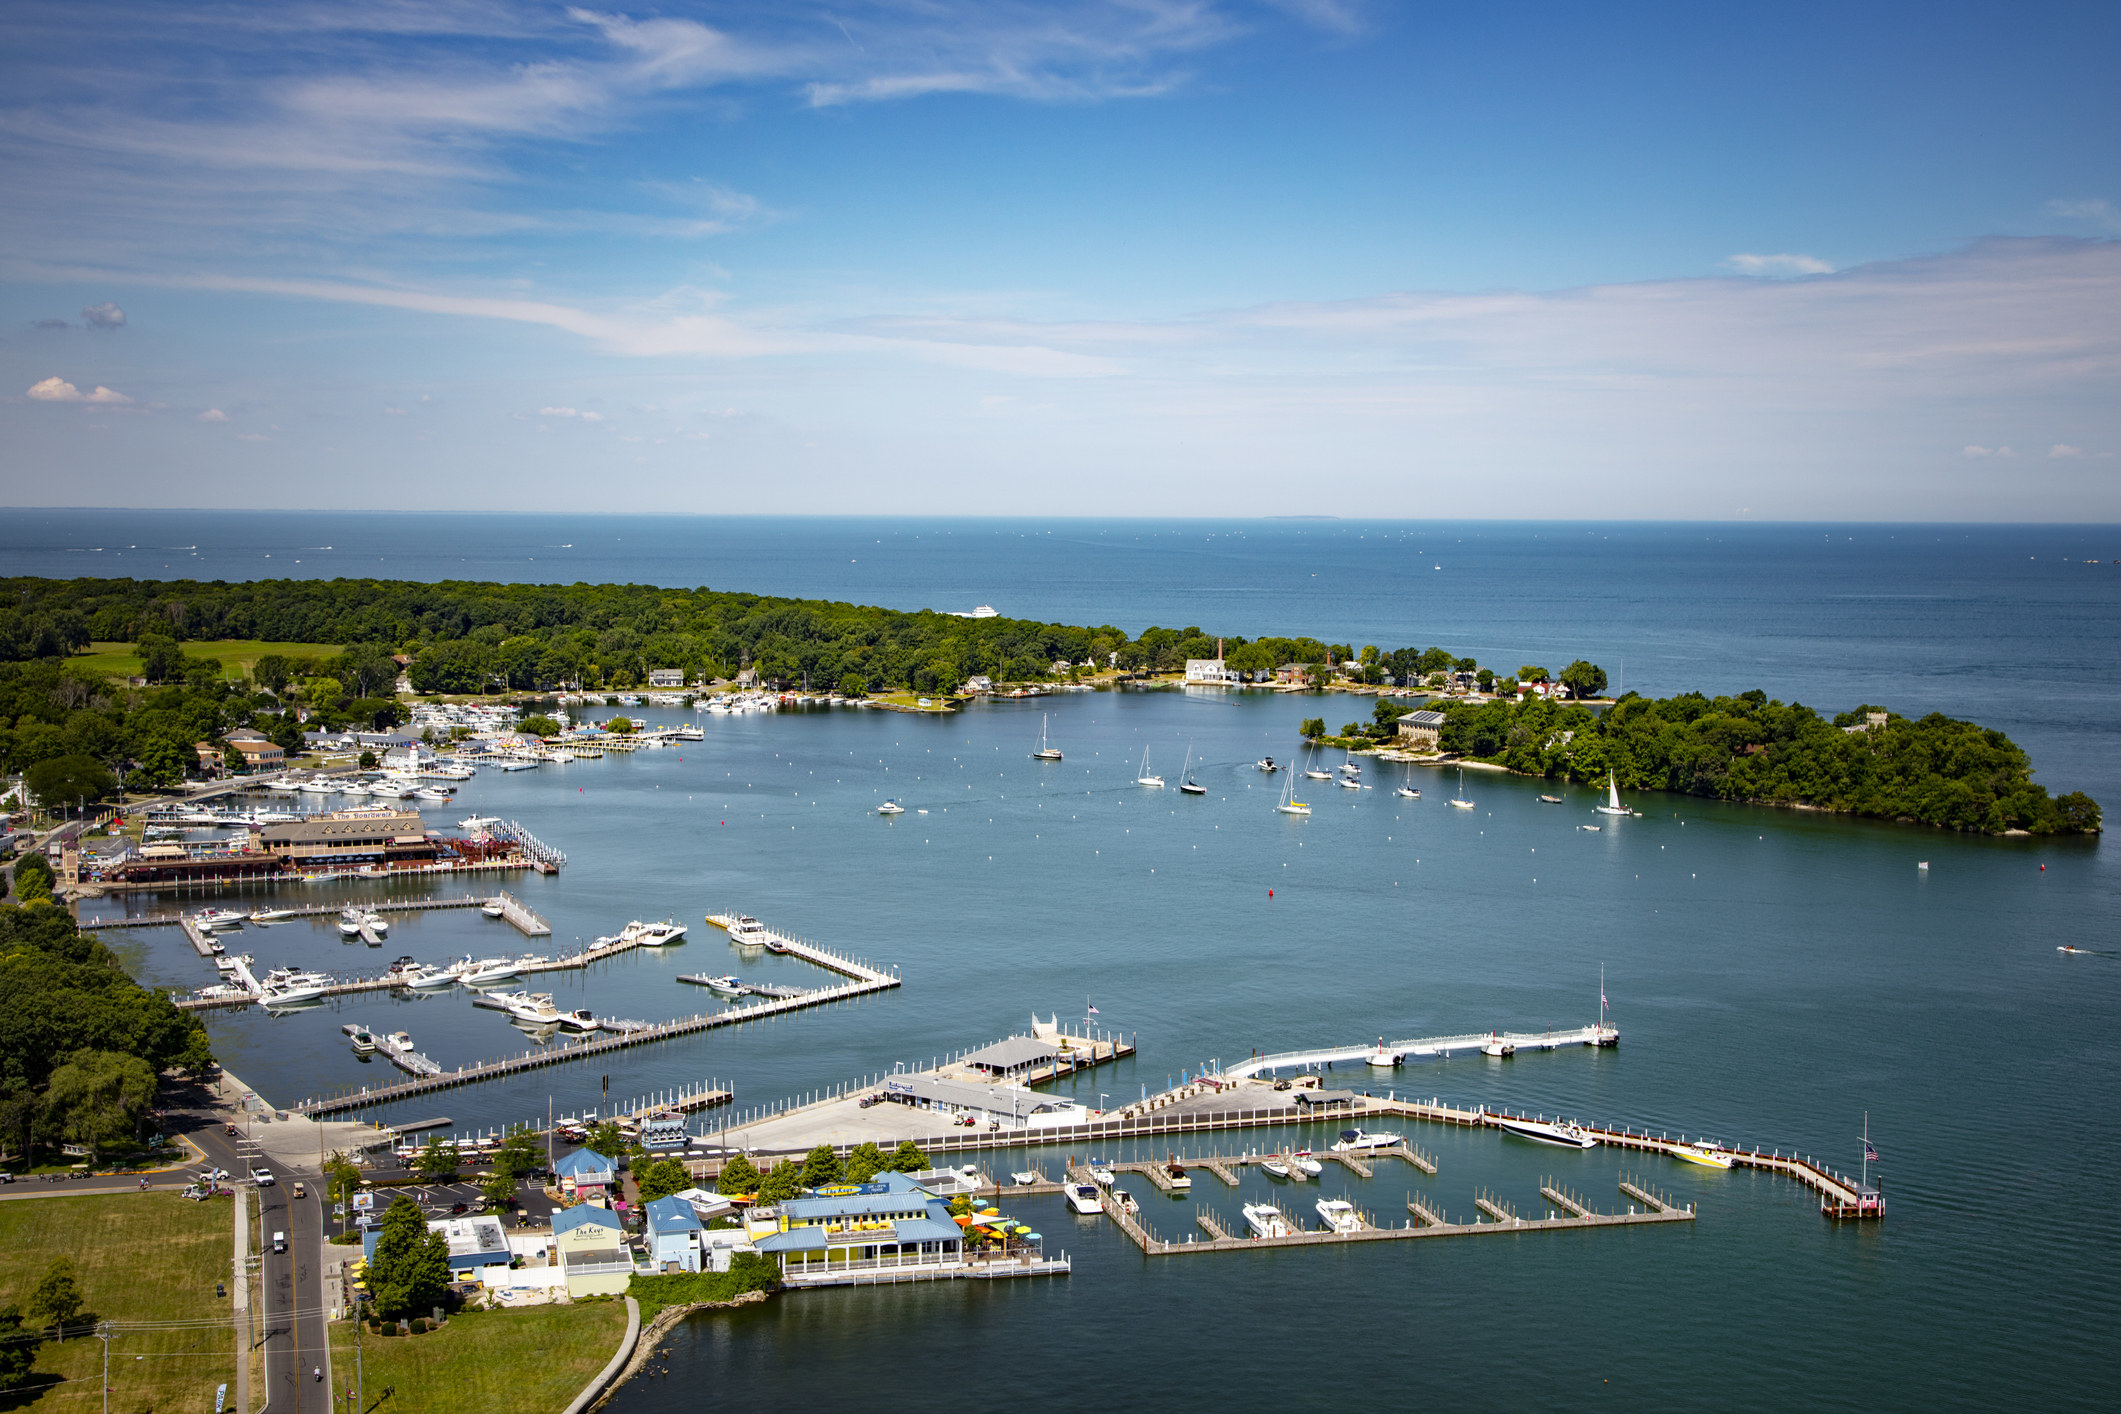 An aerial view of Put-In-Bay, Ohio.